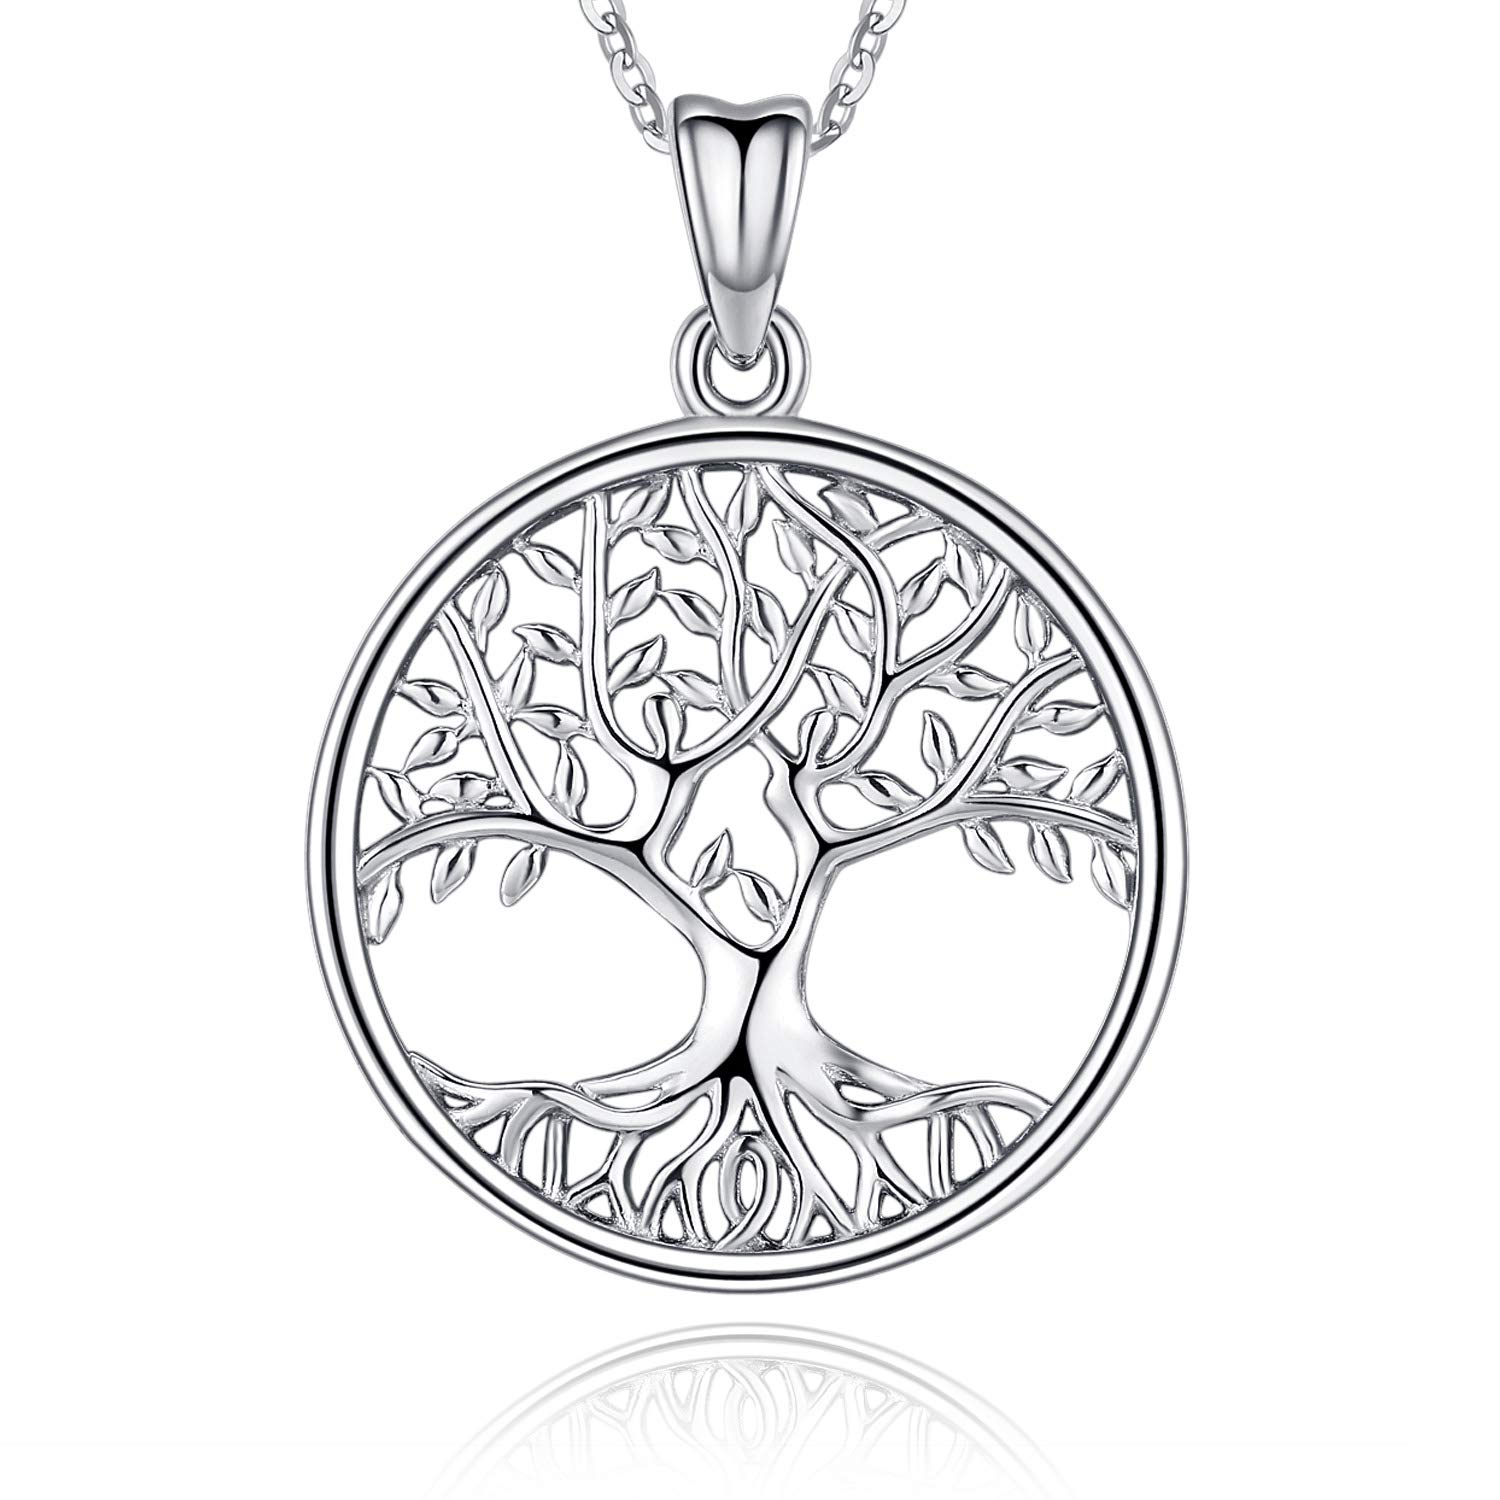 Aniu Tree of Life Pendant Sterling Silver Necklace for Women Comes with Black Jewellery Gift Box